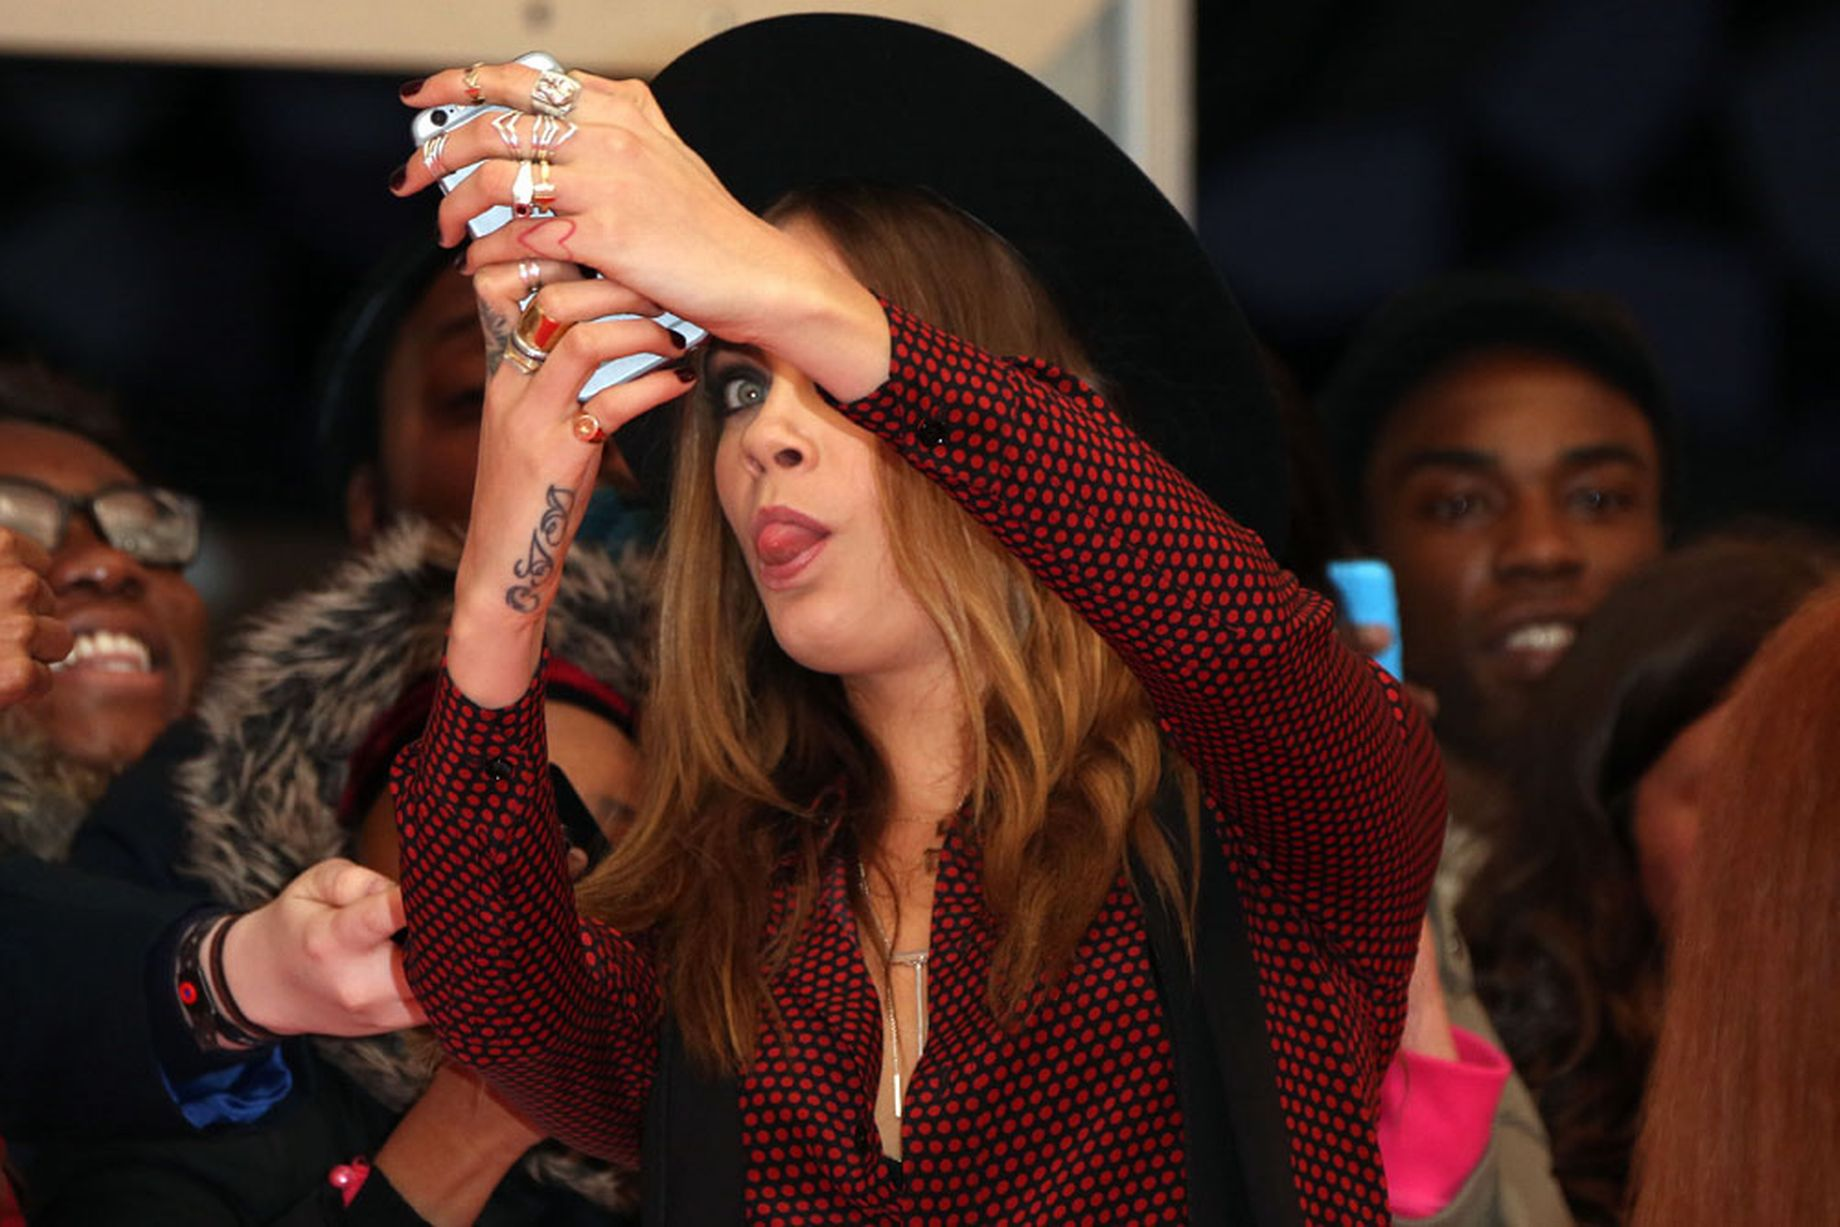 Check Out The Complete Winners List From The 2015 BRIT Awards